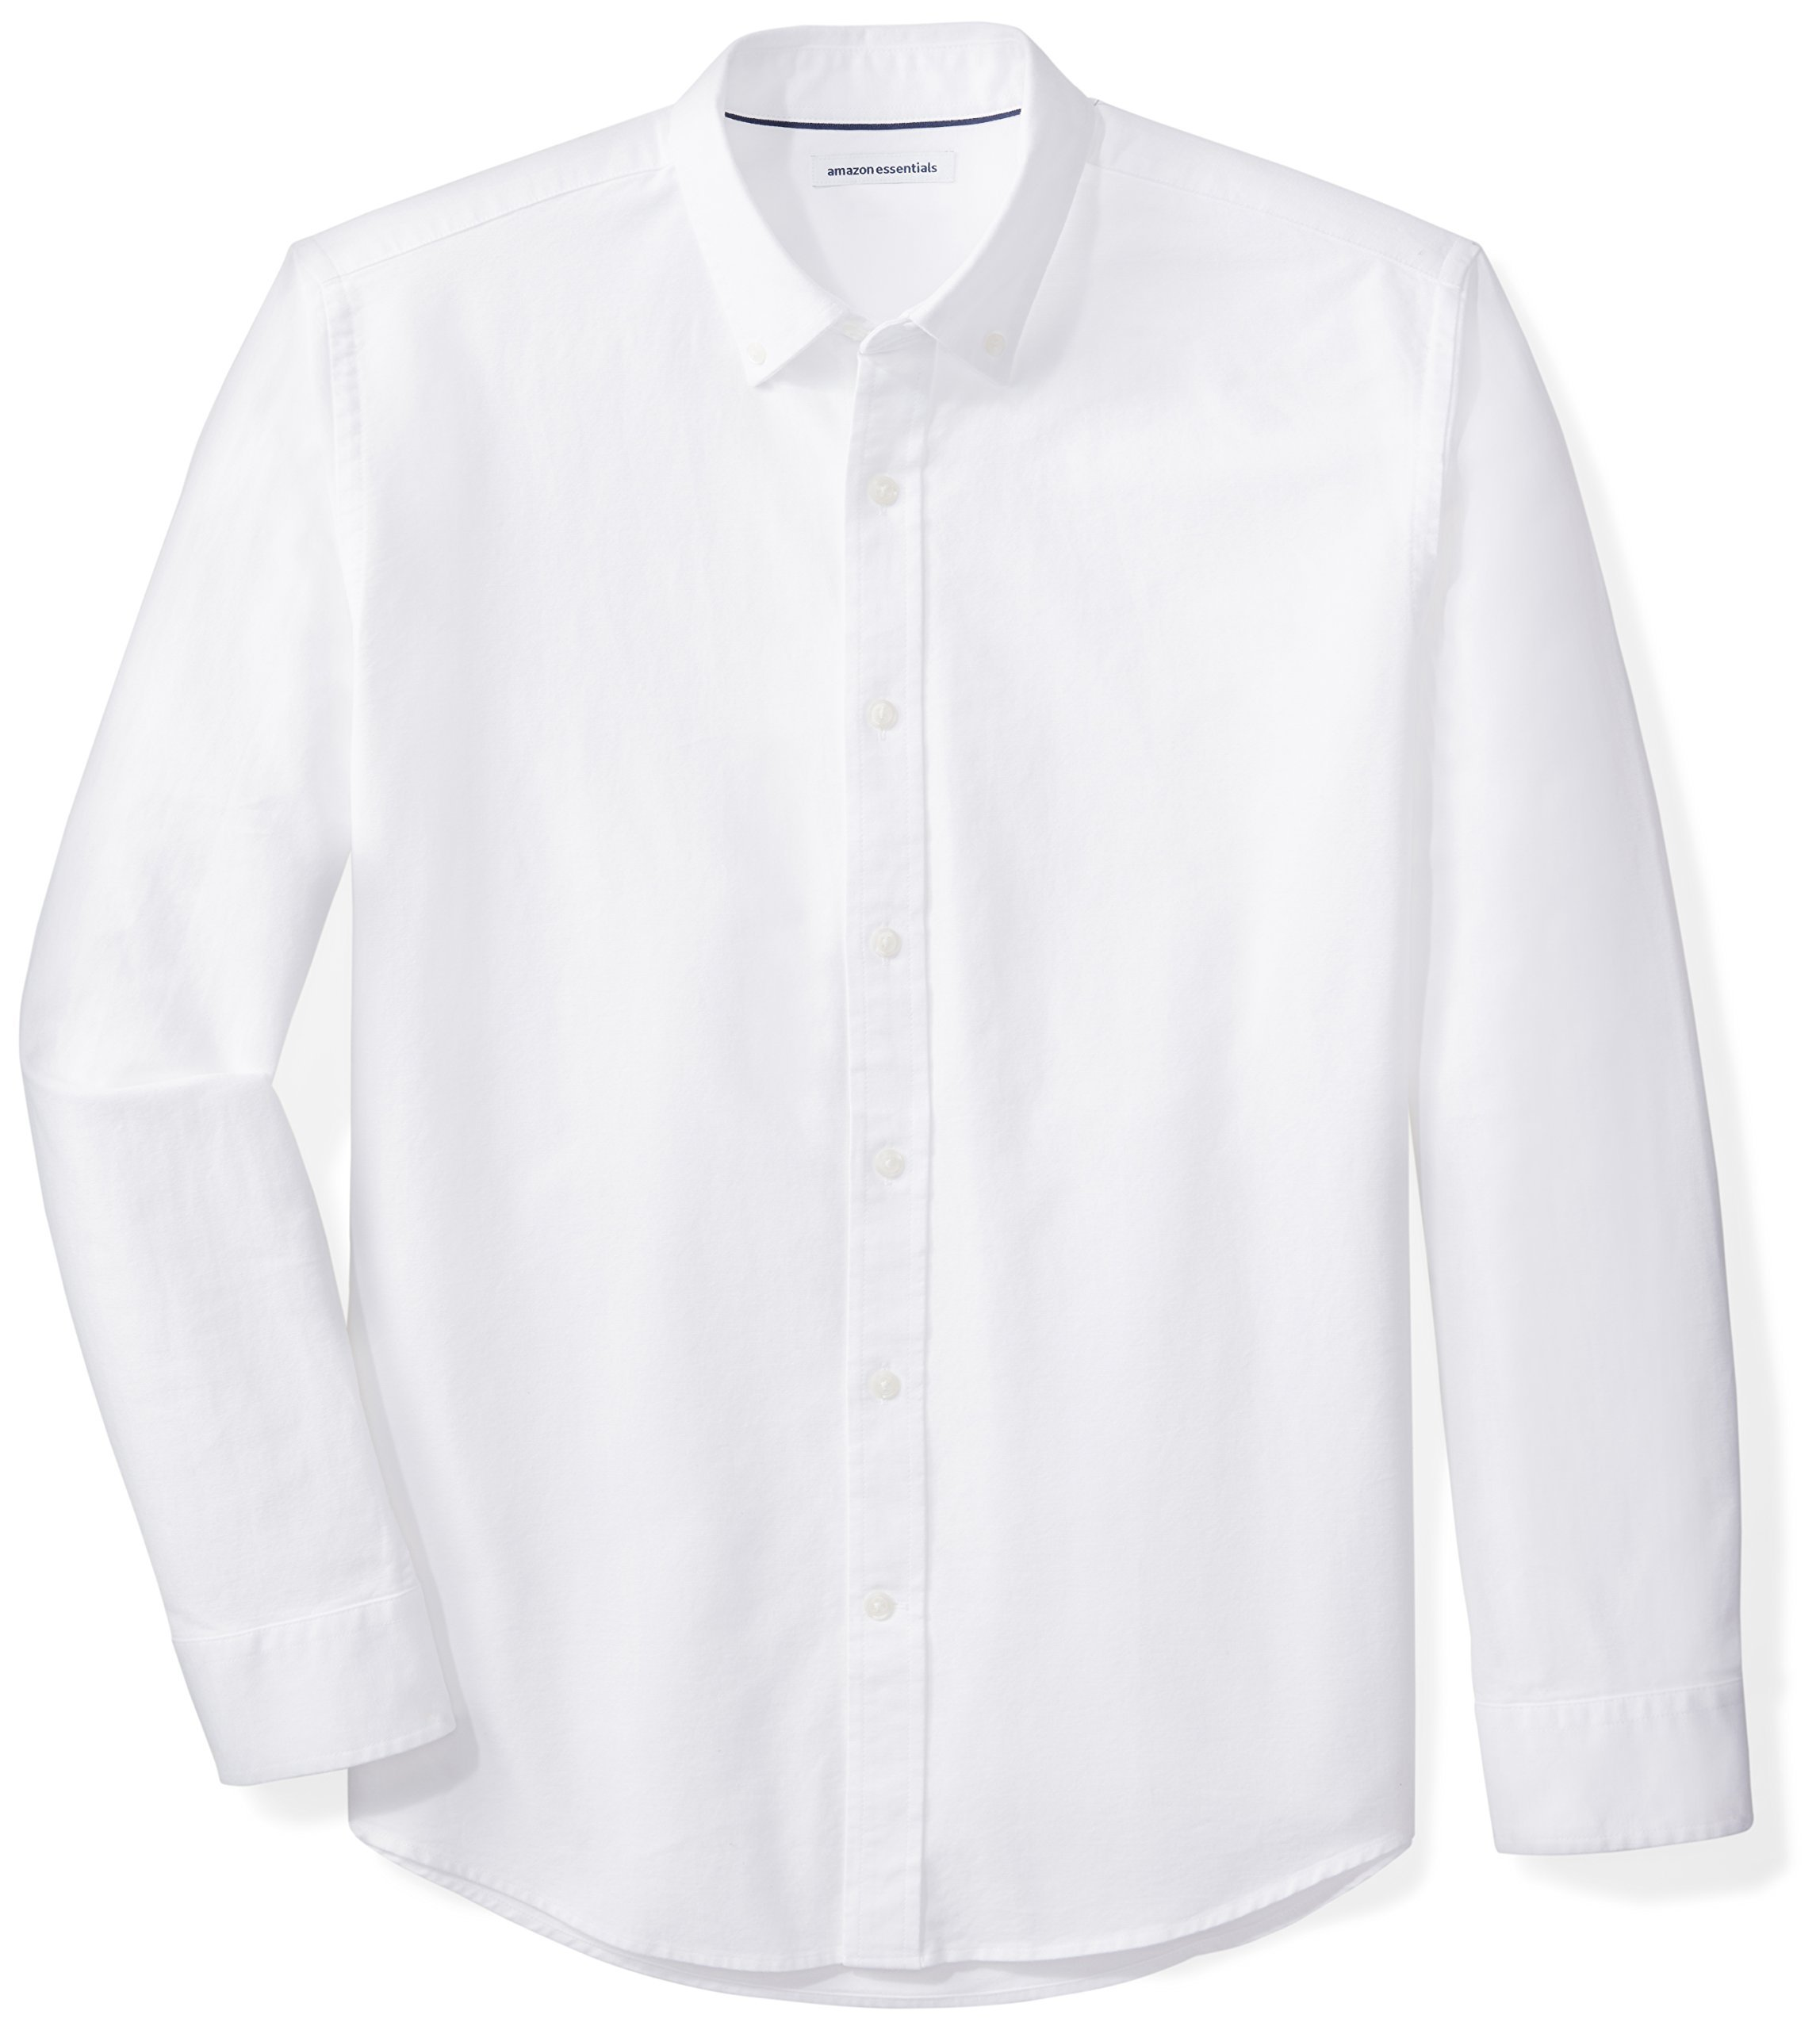 Amazon Essentials Men's Regular-Fit Long-Sleeve Solid Oxford Shirt, White, Large